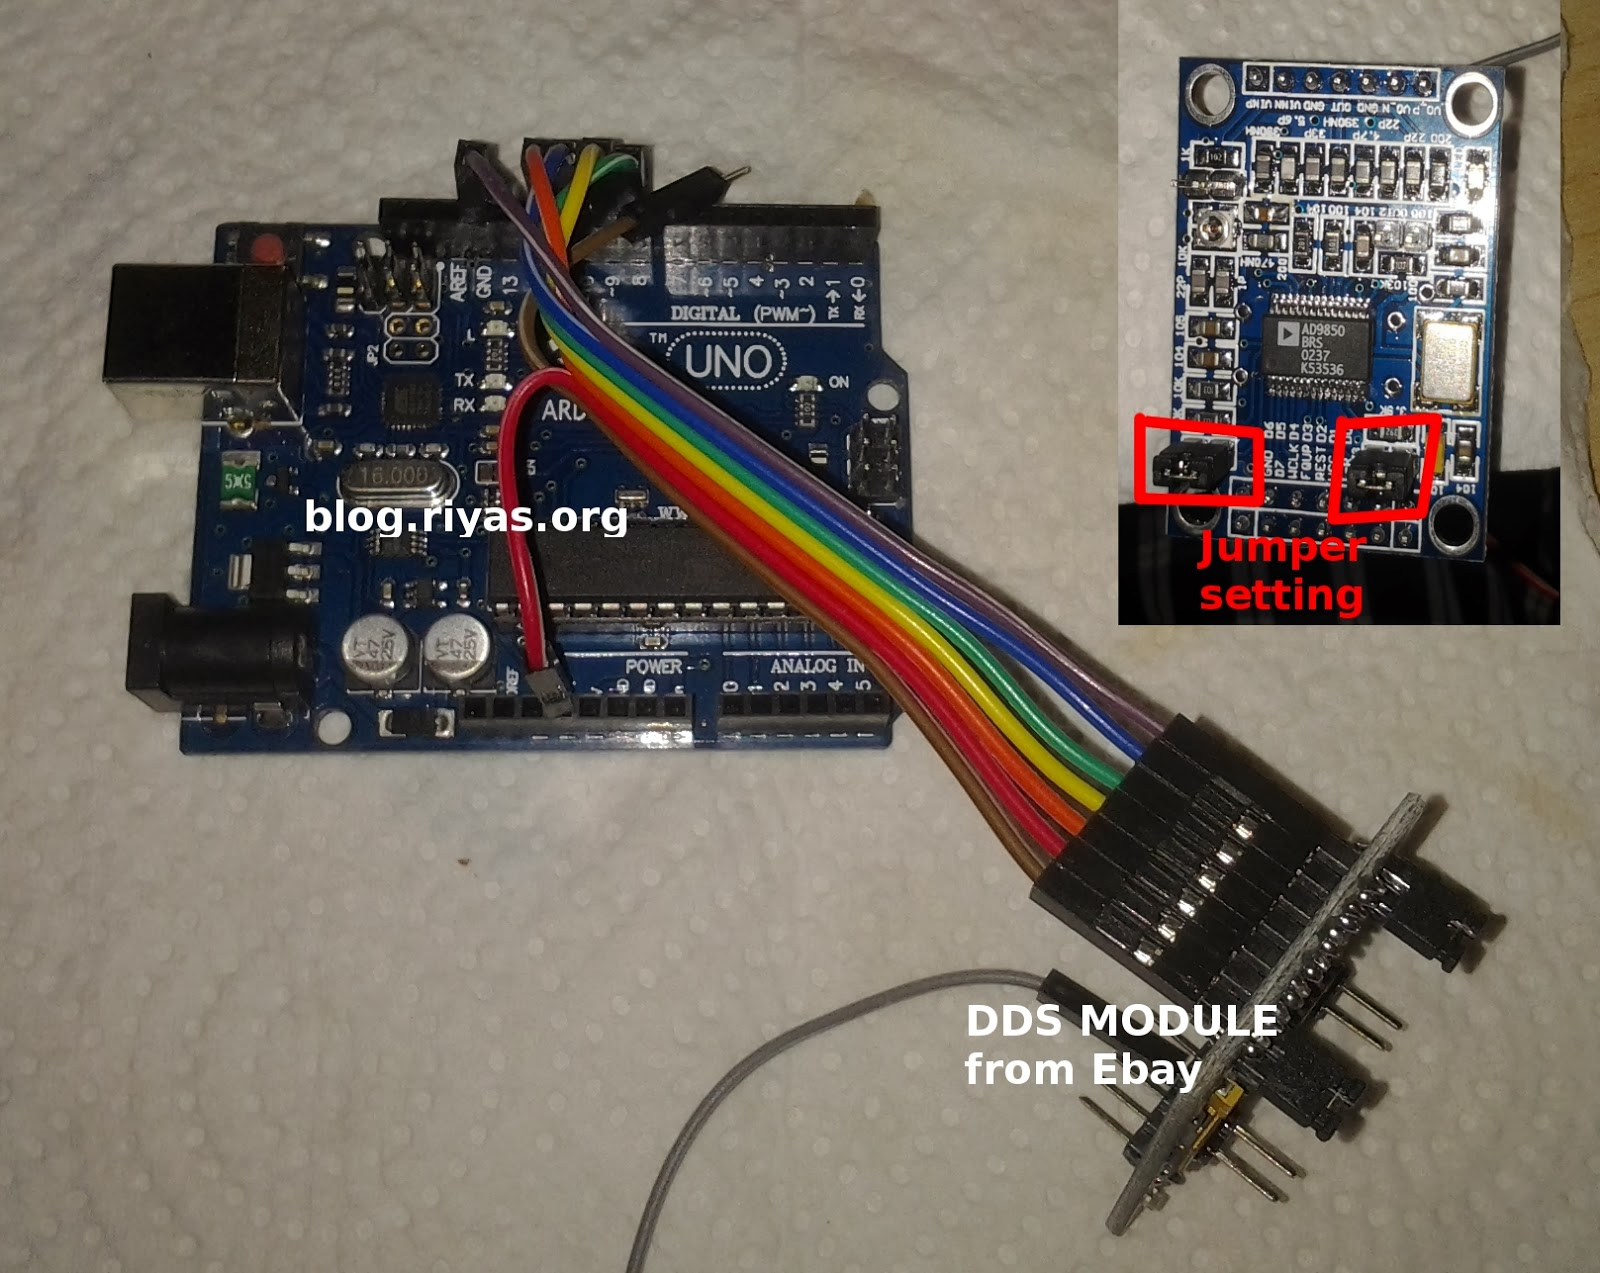 Learn on the fly : Quickly test an AD9850 ebay module with